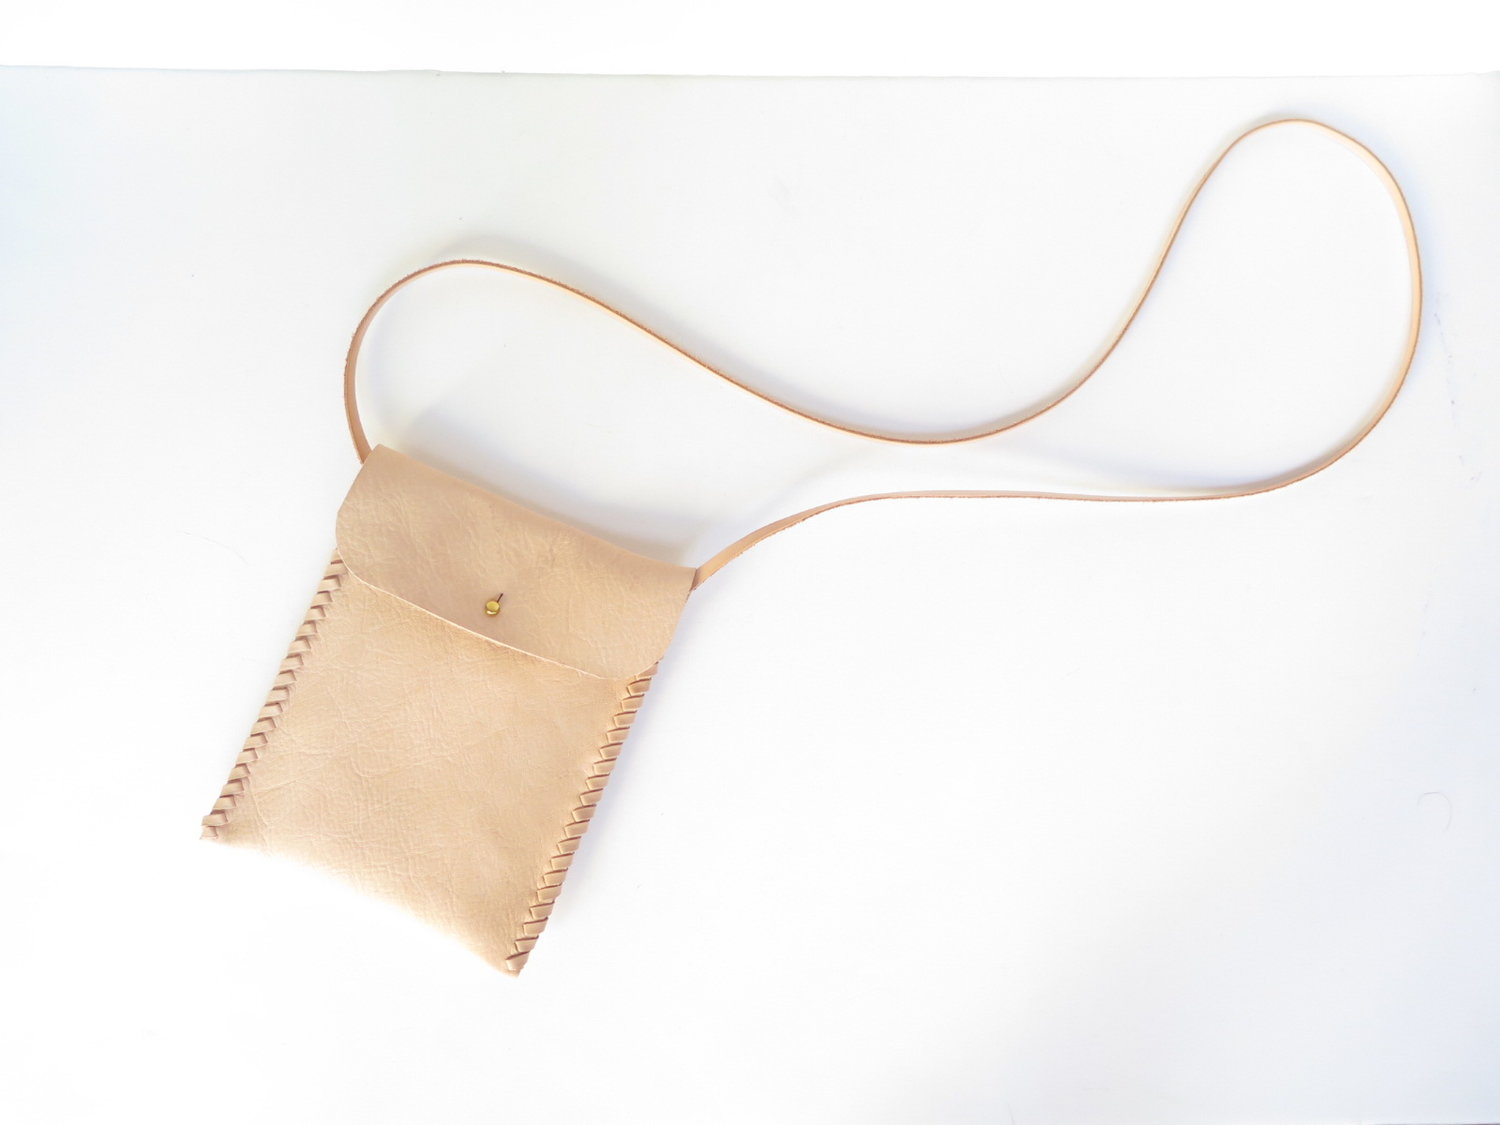 Slim Satchel iphone purse in nude vegetable tanned Leather by Mary Savel